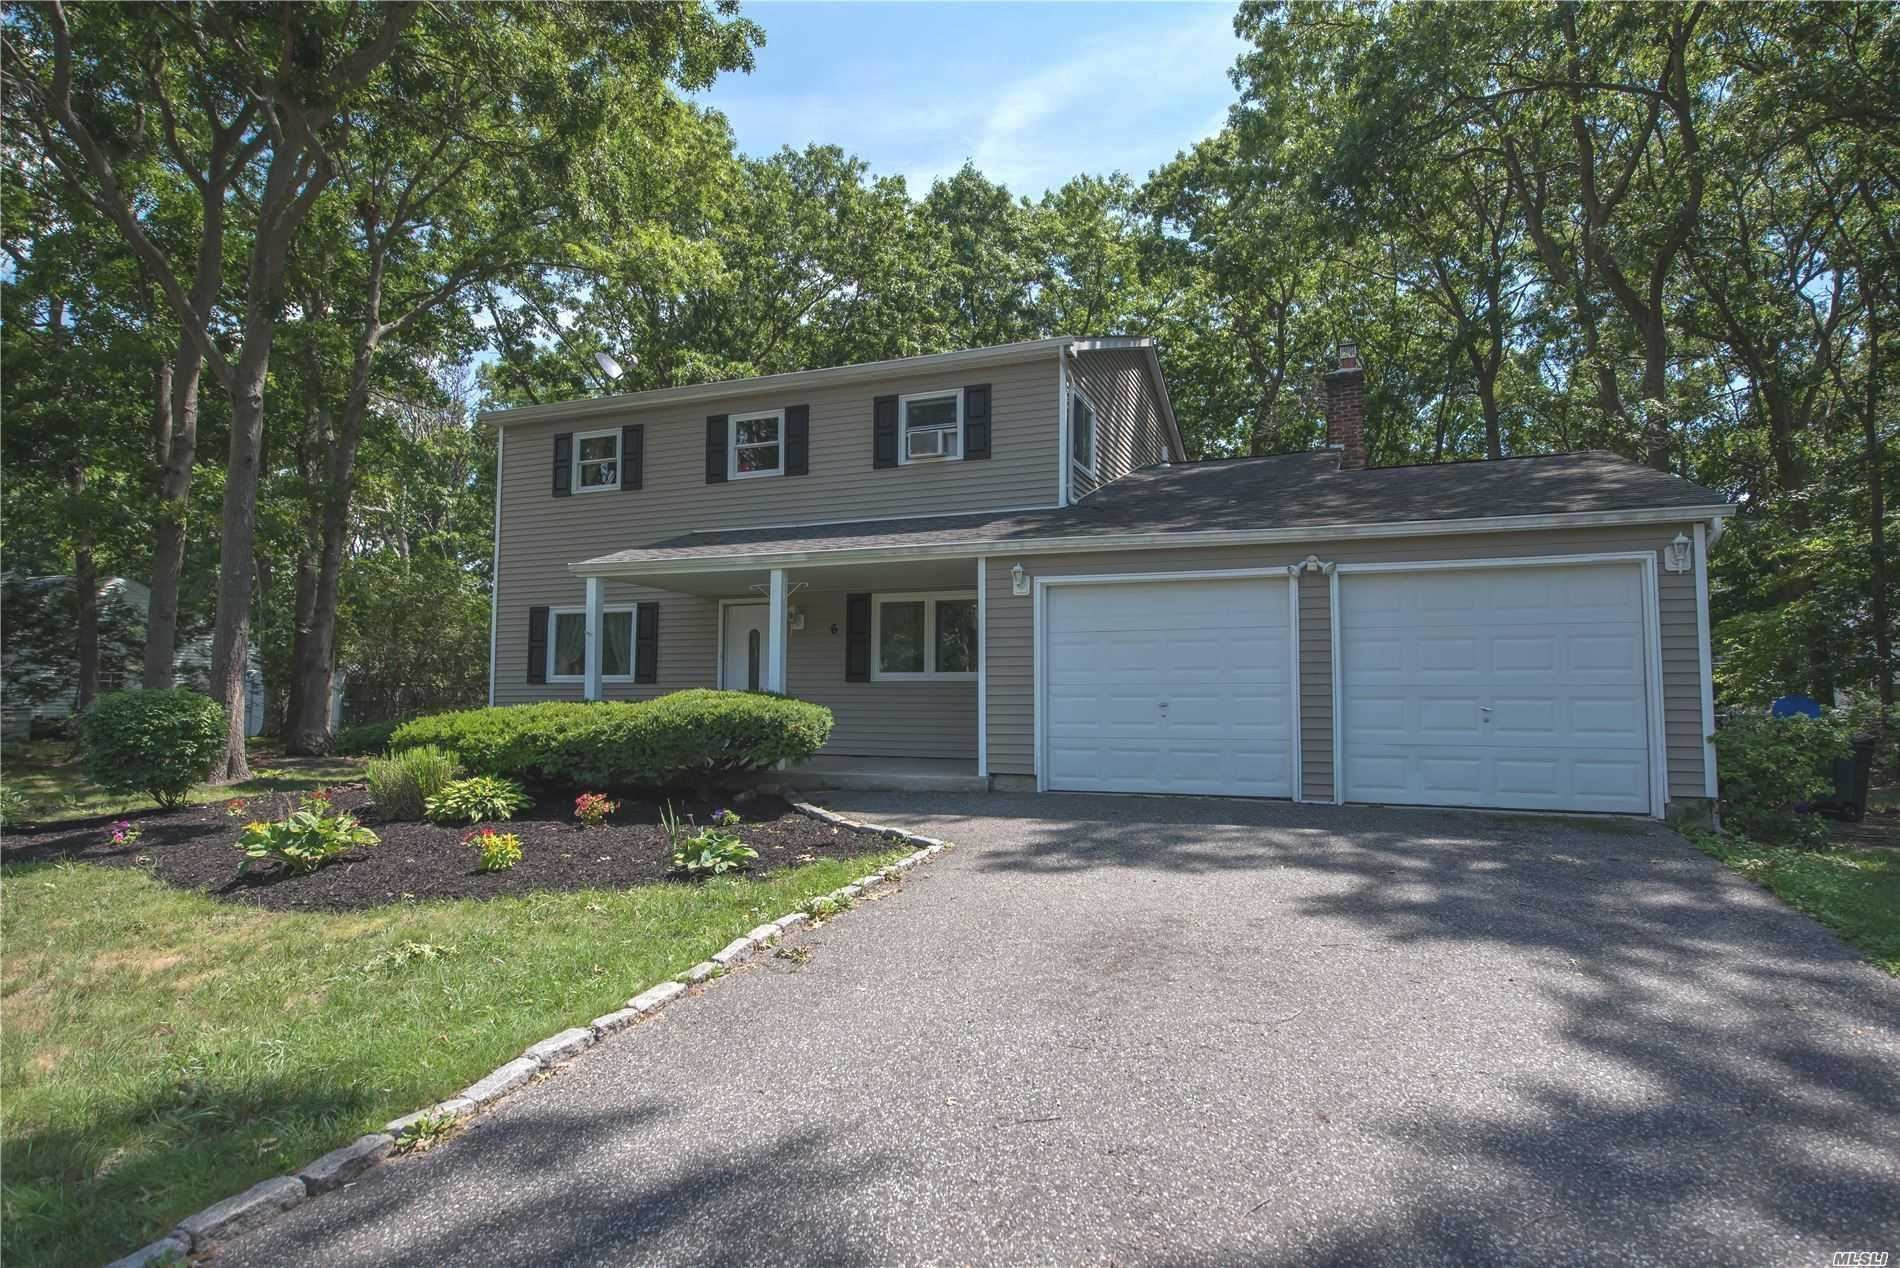 6 Karl Court, Medford, NY 11763 - MLS#: 3232502